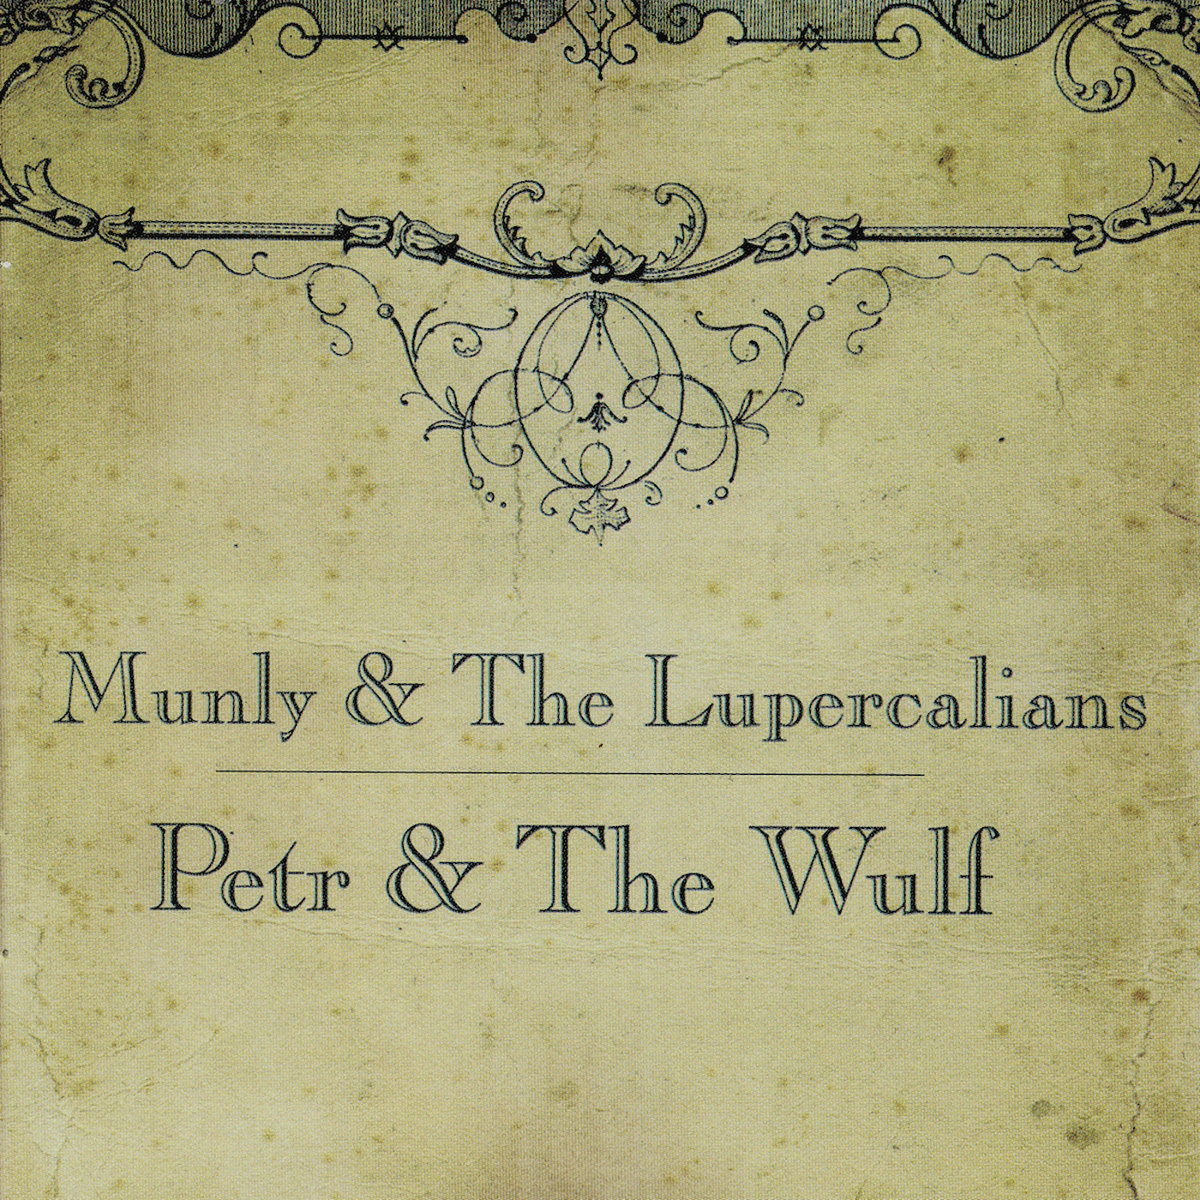 munly lupercalians petr and the wolf album cover lp cd